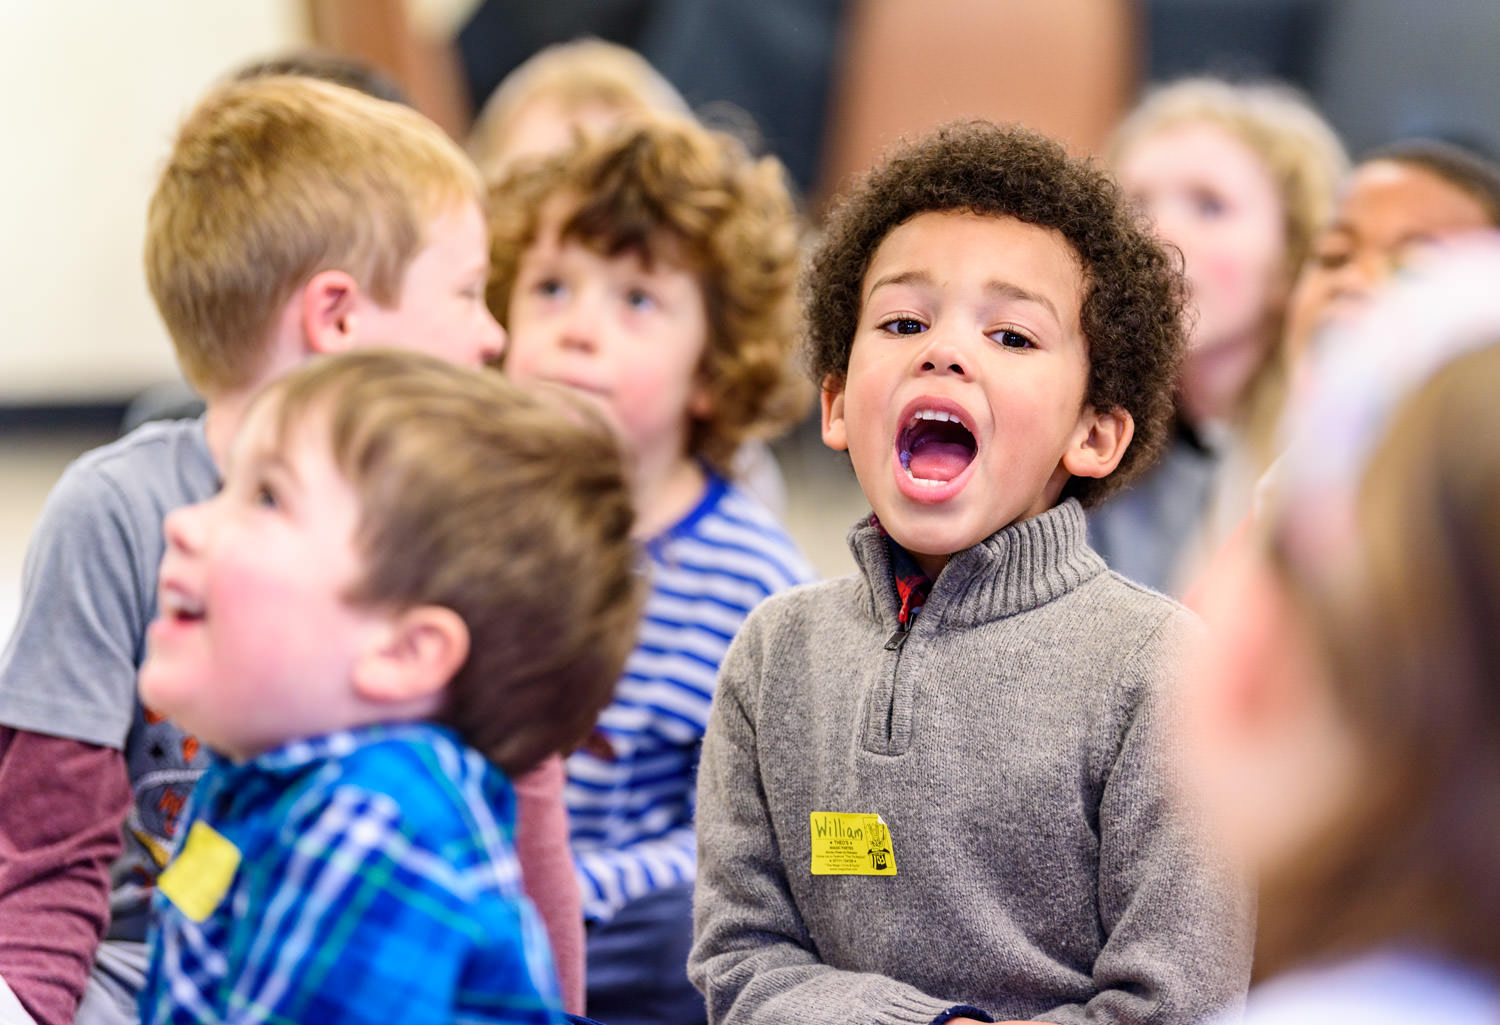 Boy shouting in a crowd of children sitting down